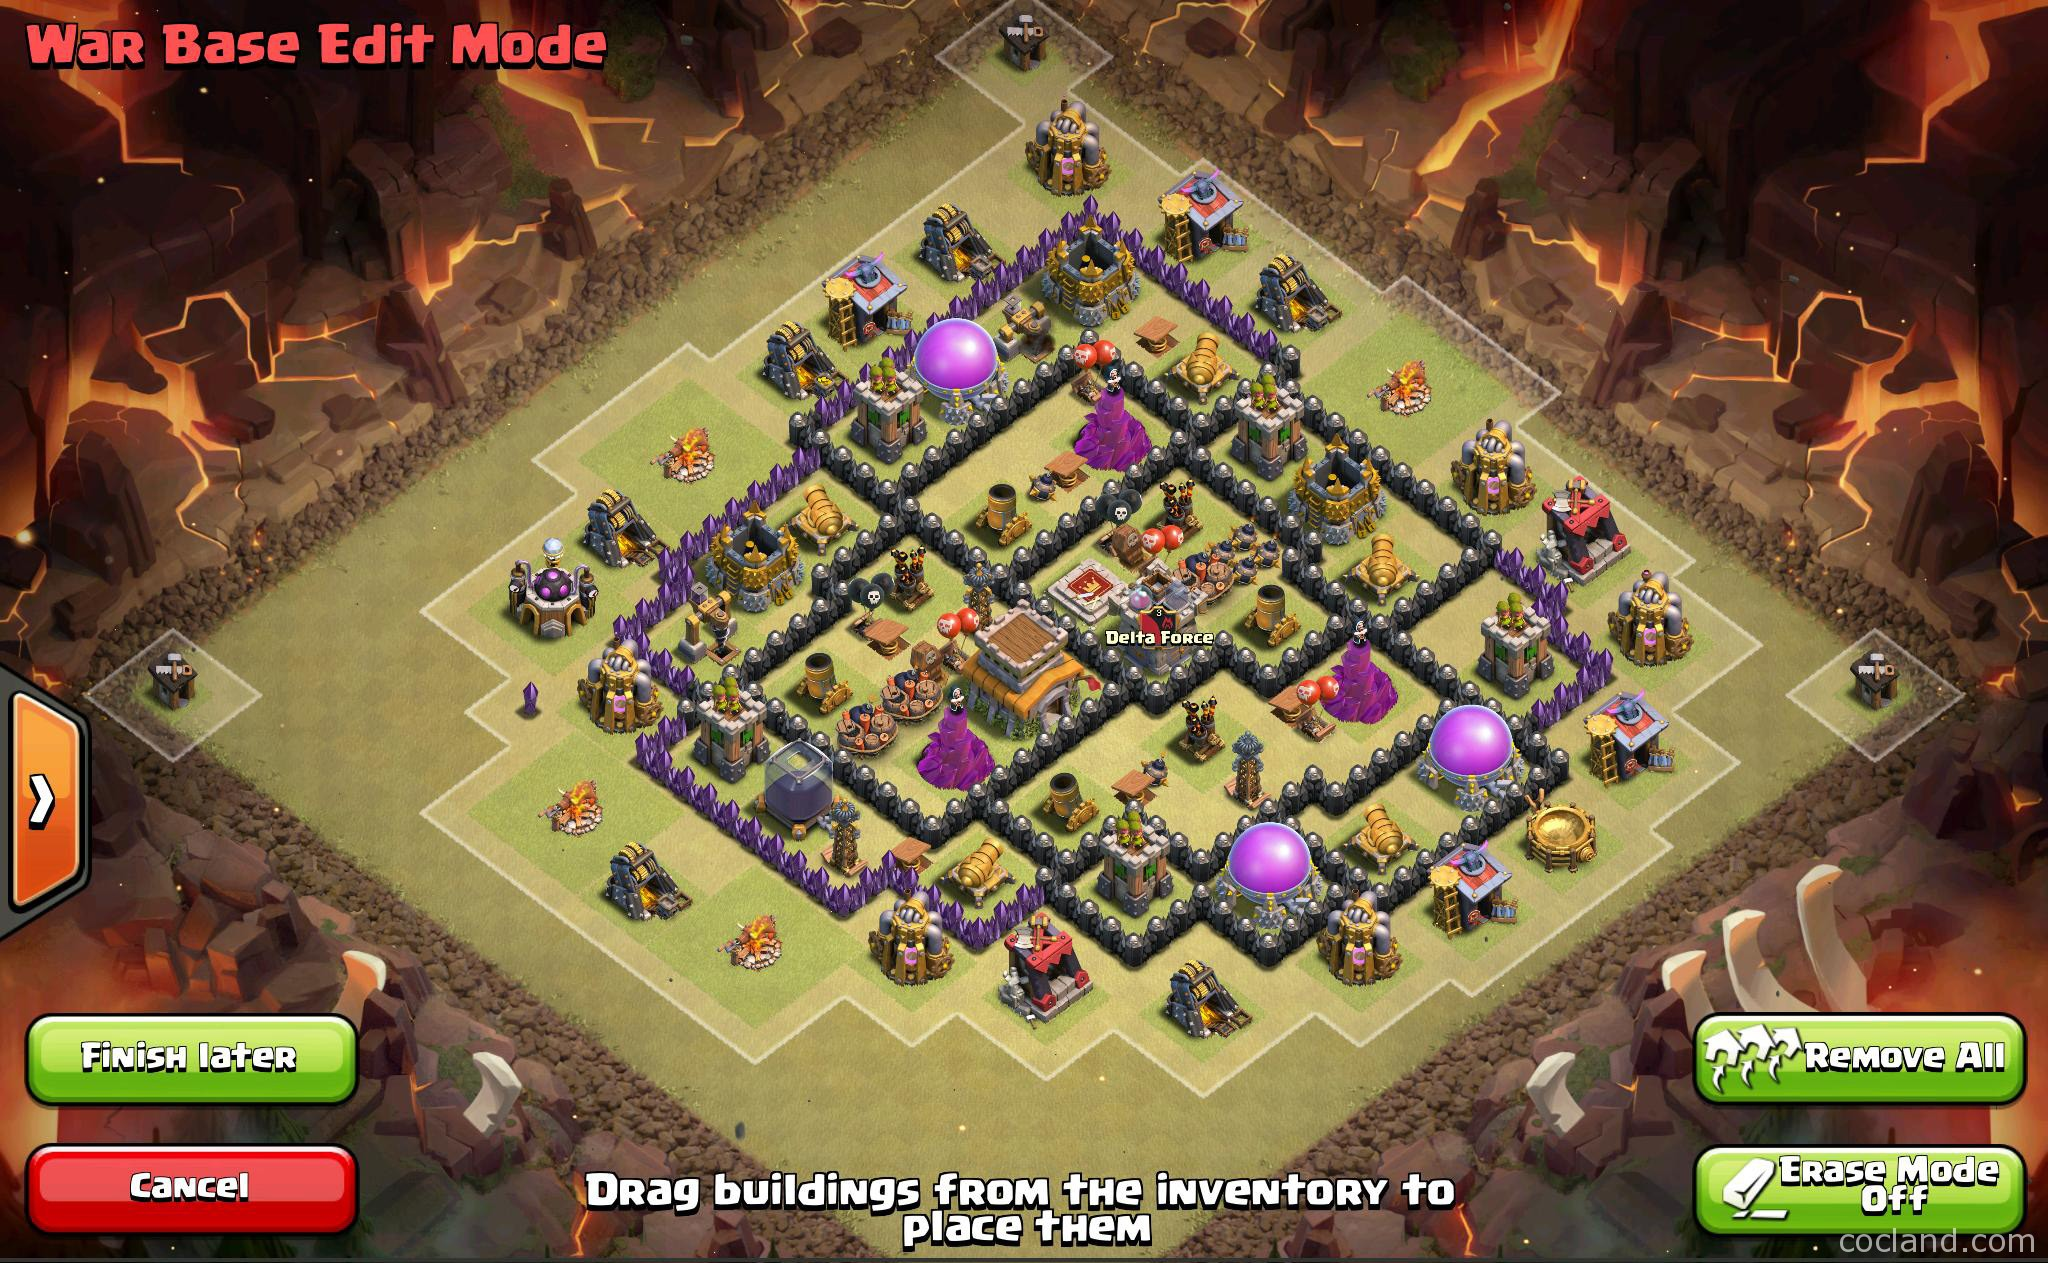 the-fates-anti-3-stars-th8-war-base